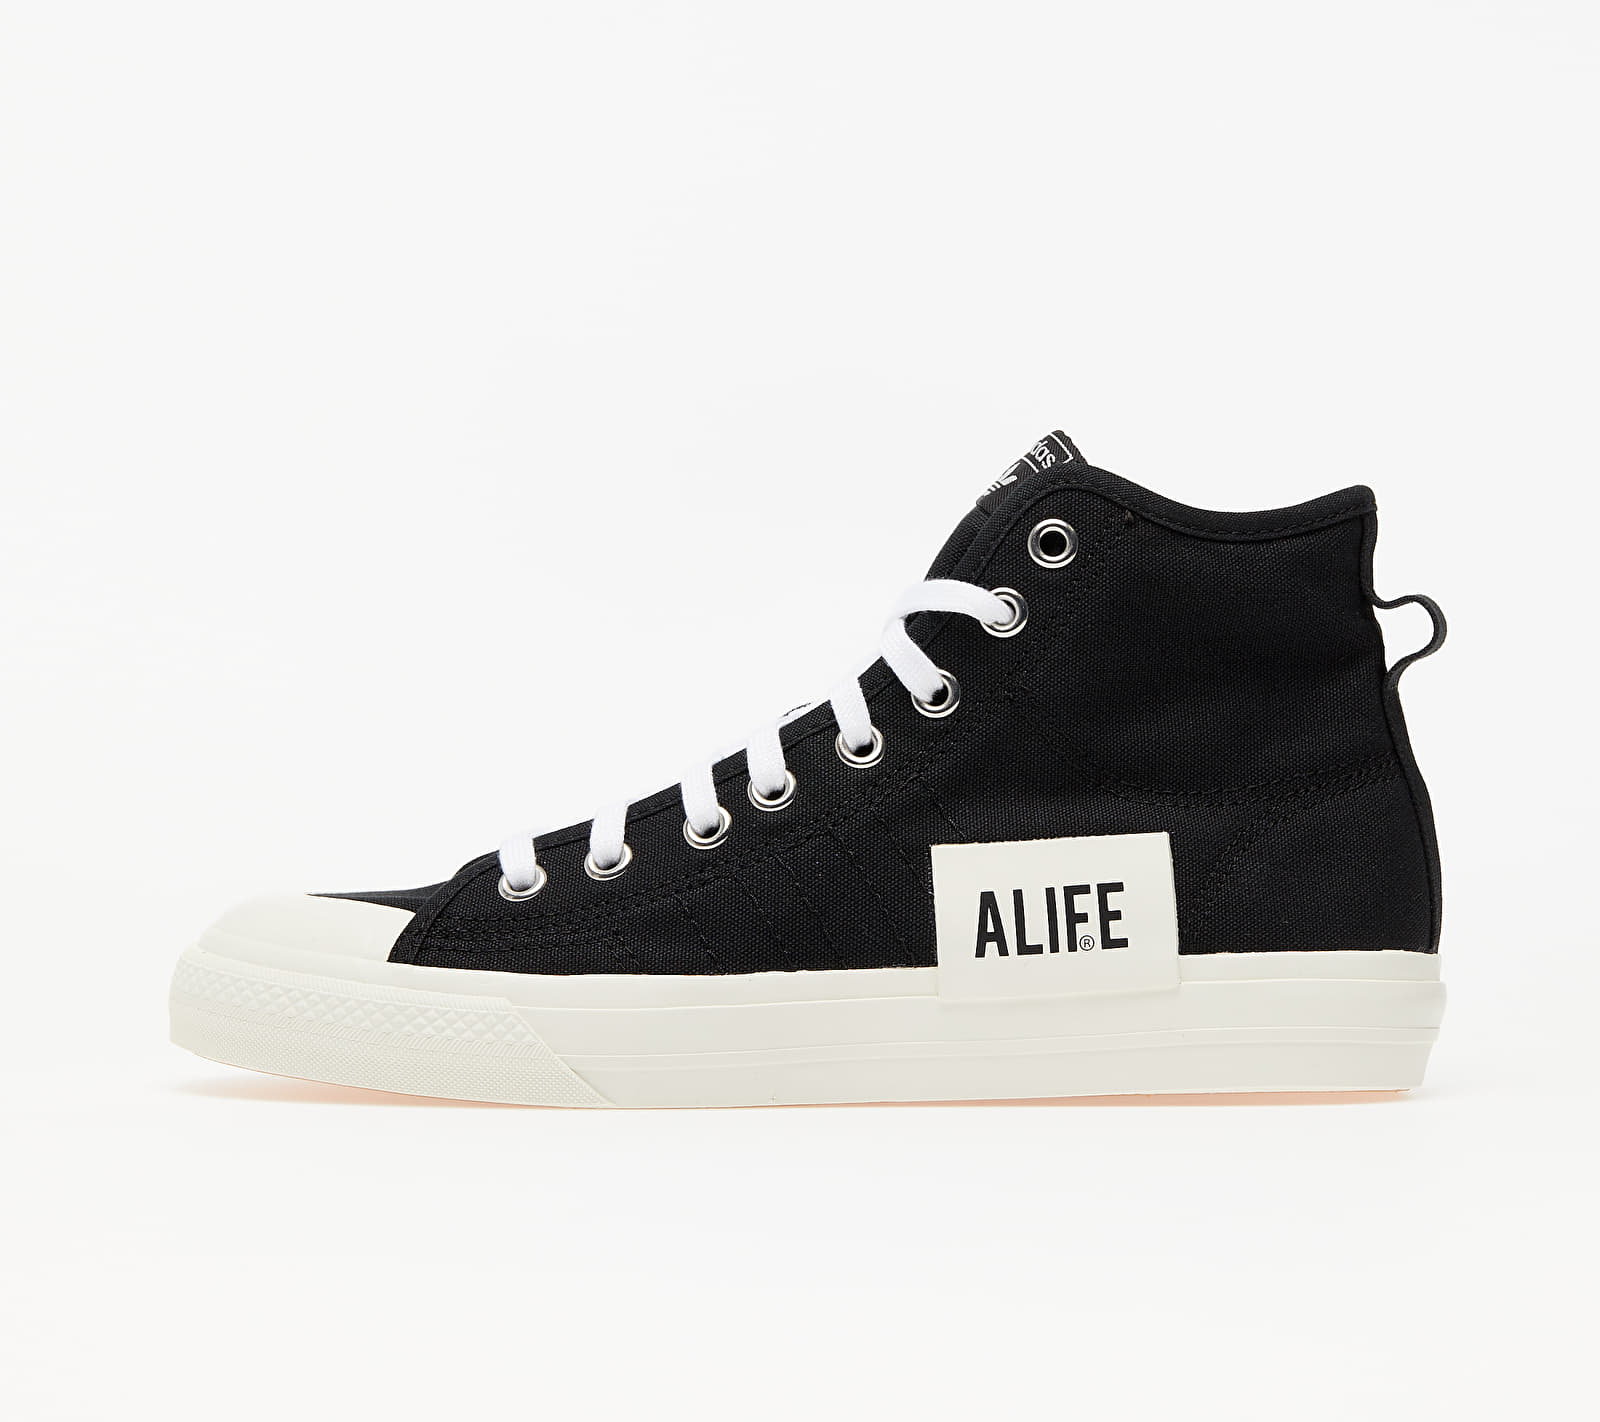 adidas x ALIFE Nizza Hi Core Black/ Off White/ Off White EUR 38